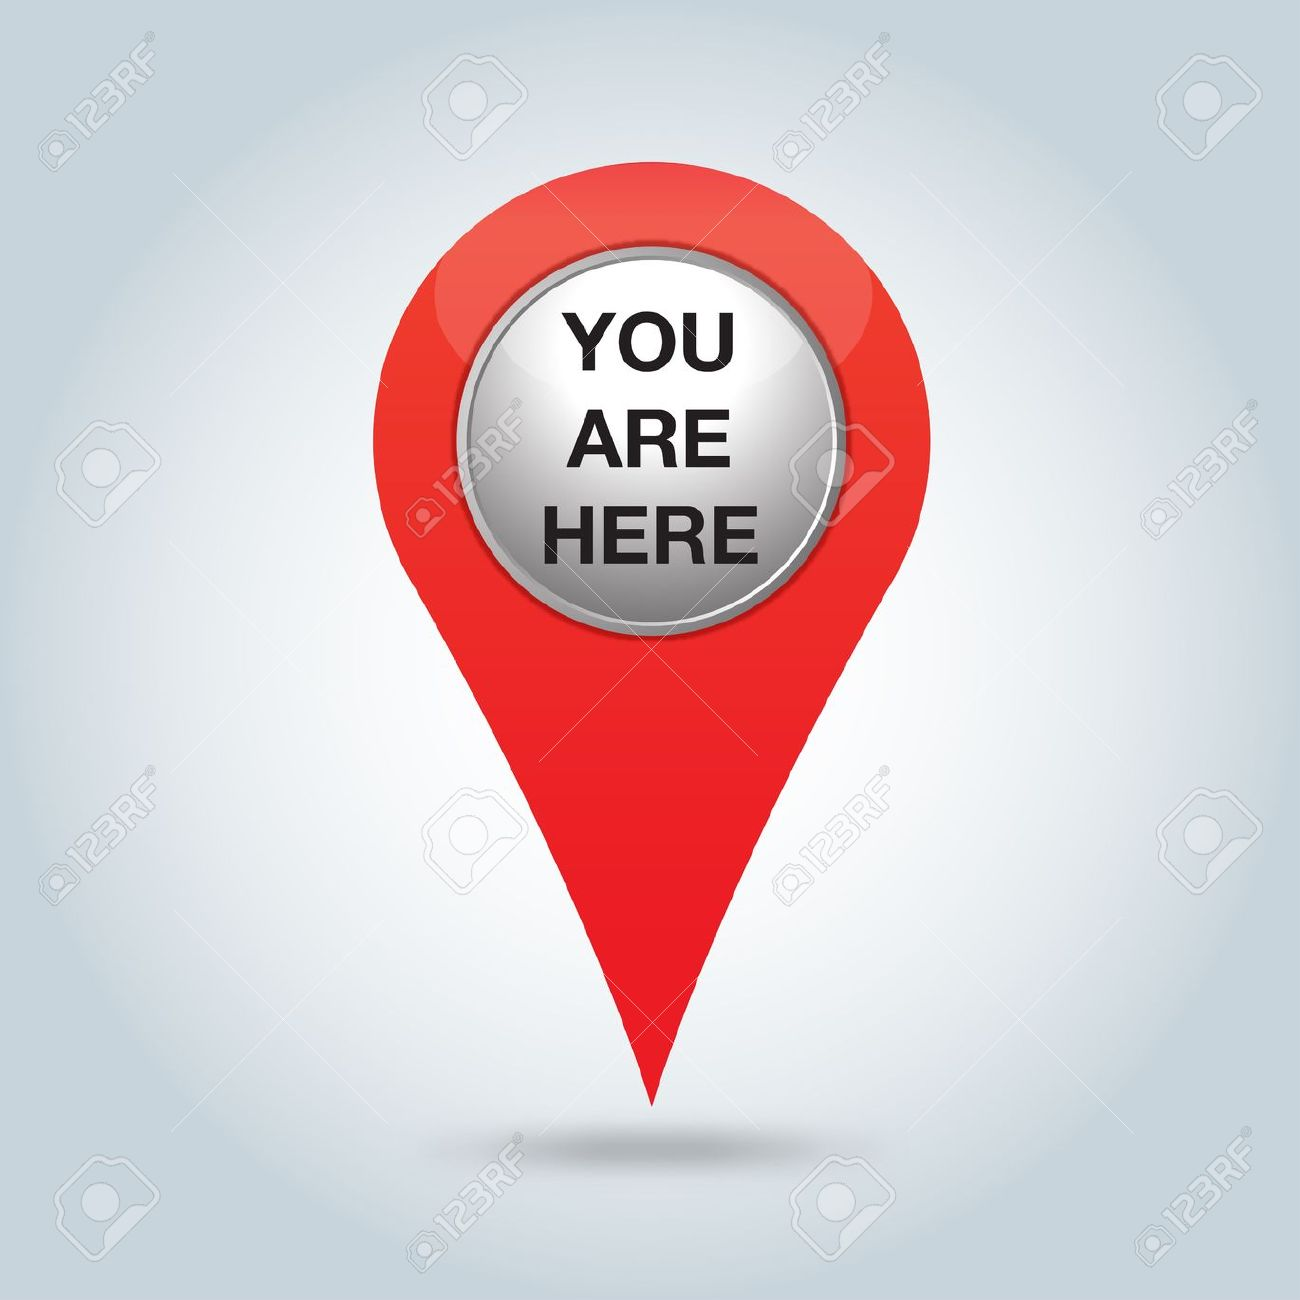 Clipart you are here.